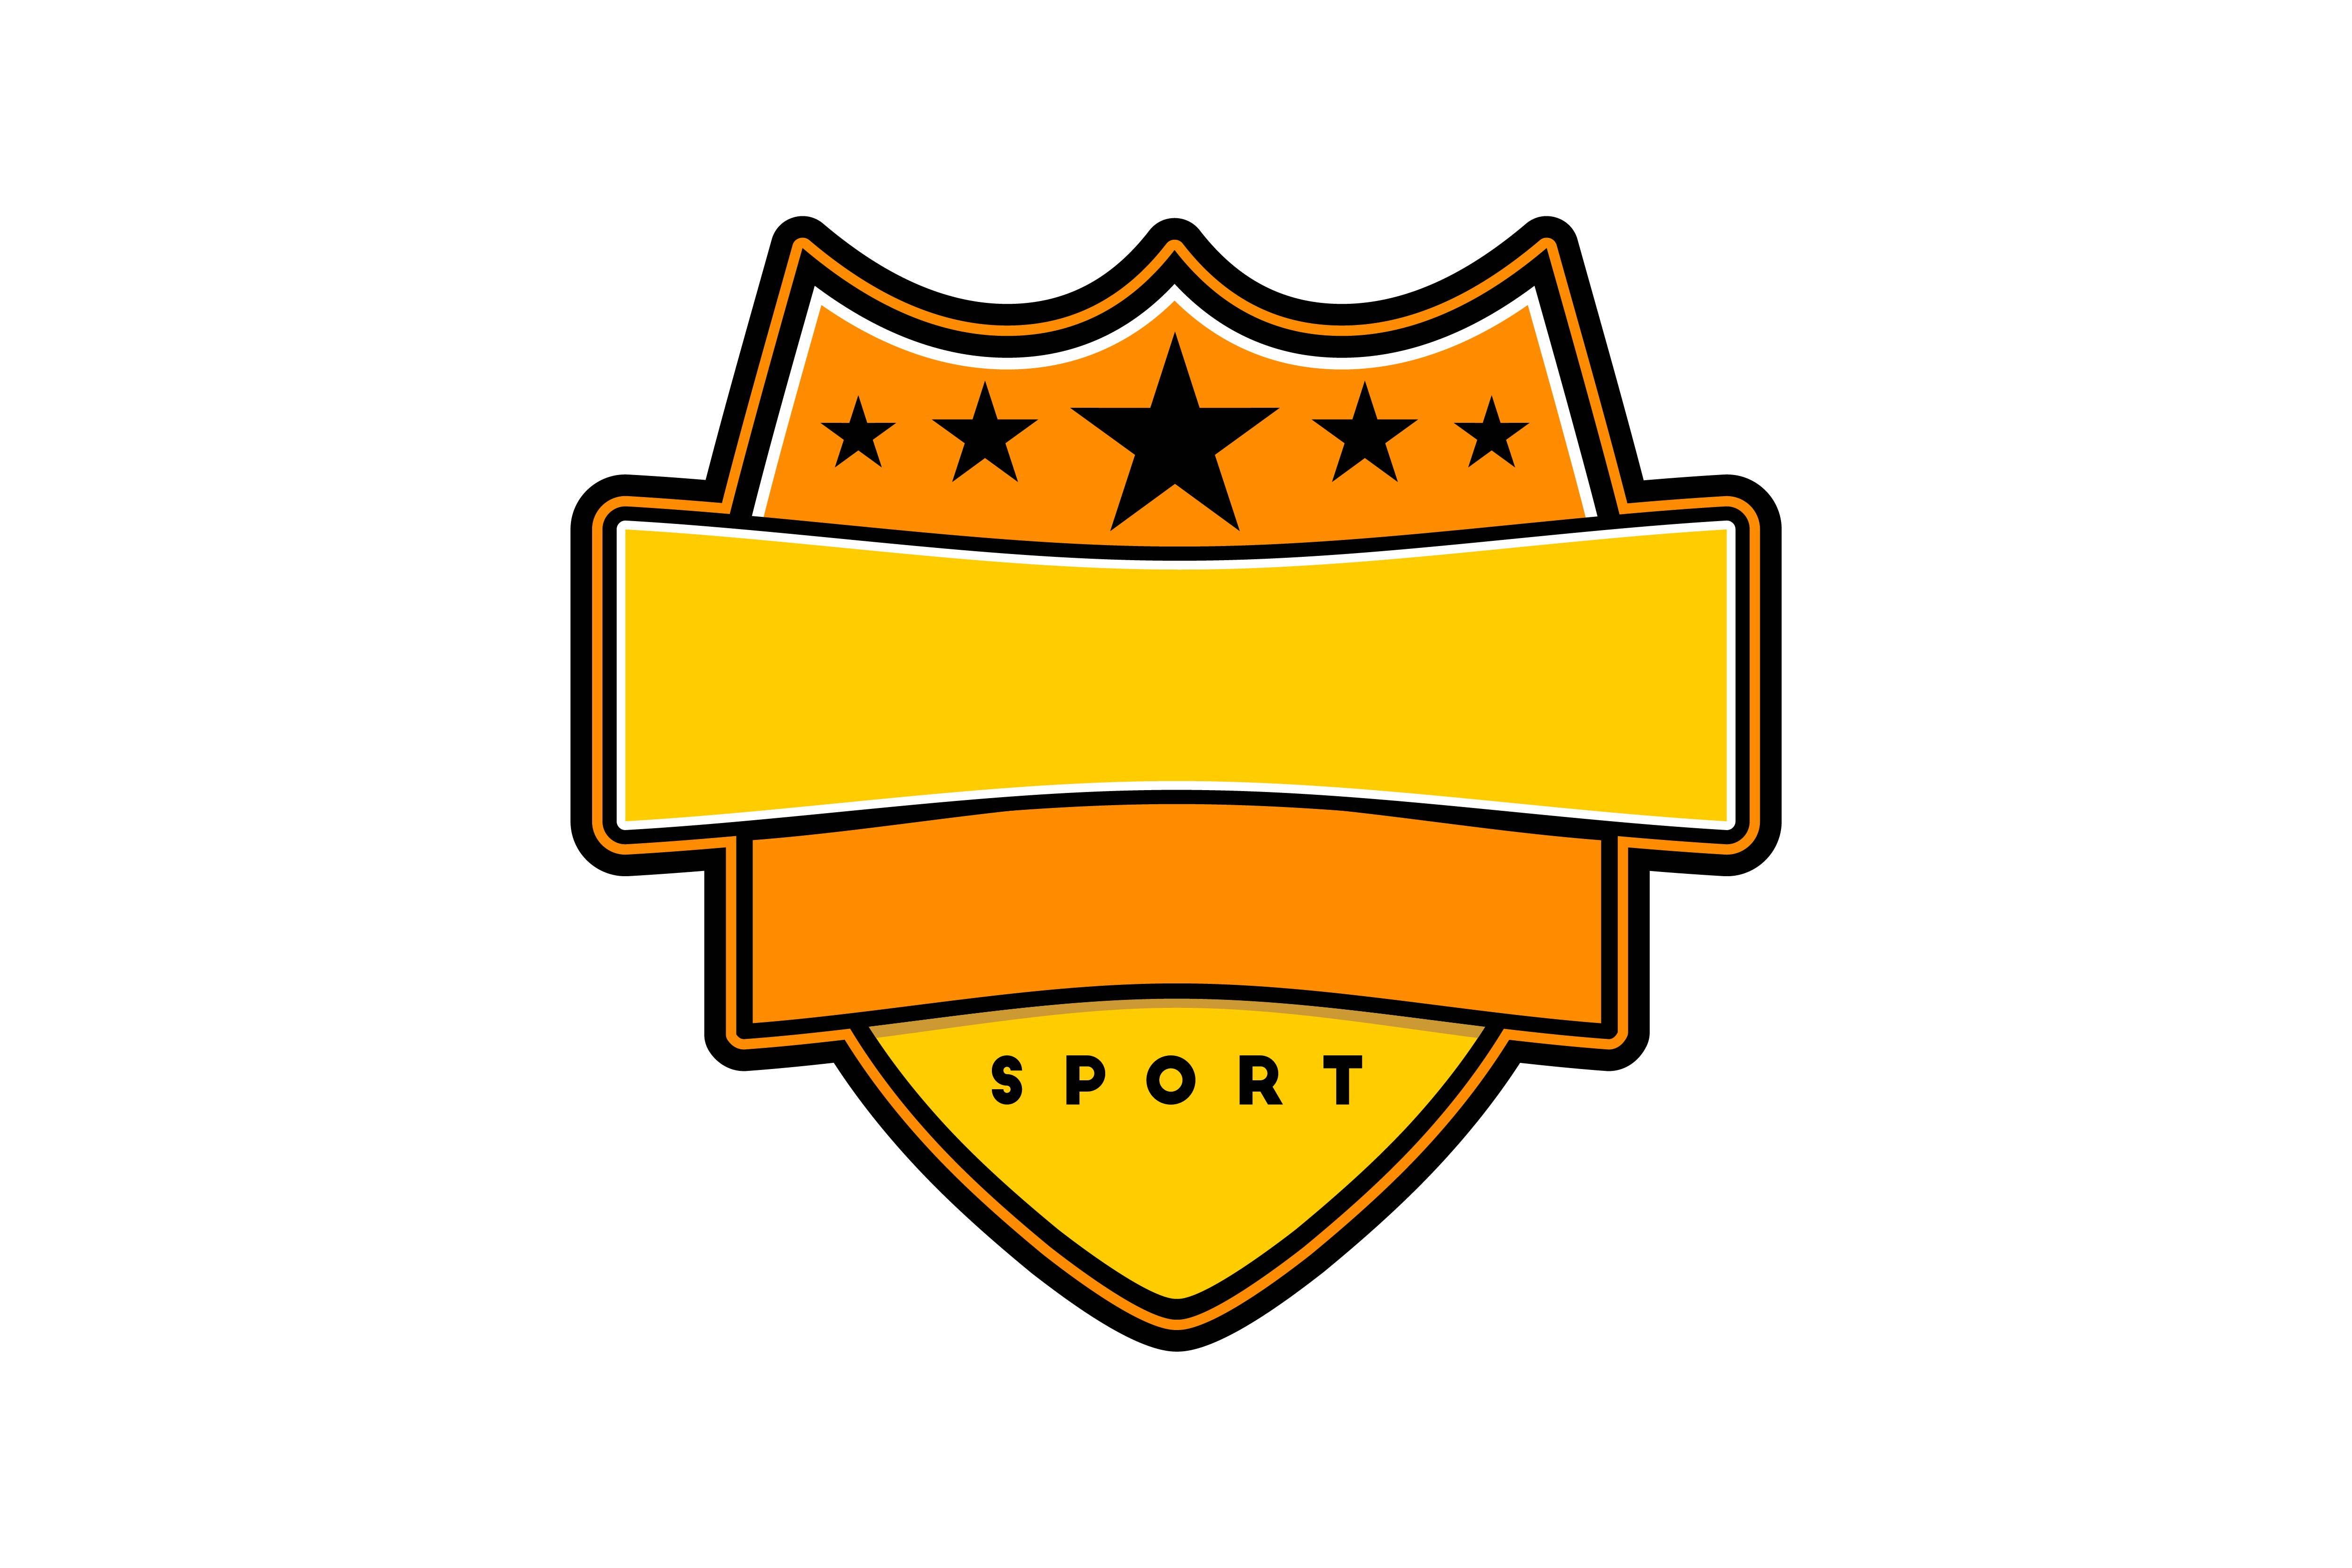 Download Free Sport Badge Template Logo Graphic By Yahyaanasatokillah for Cricut Explore, Silhouette and other cutting machines.